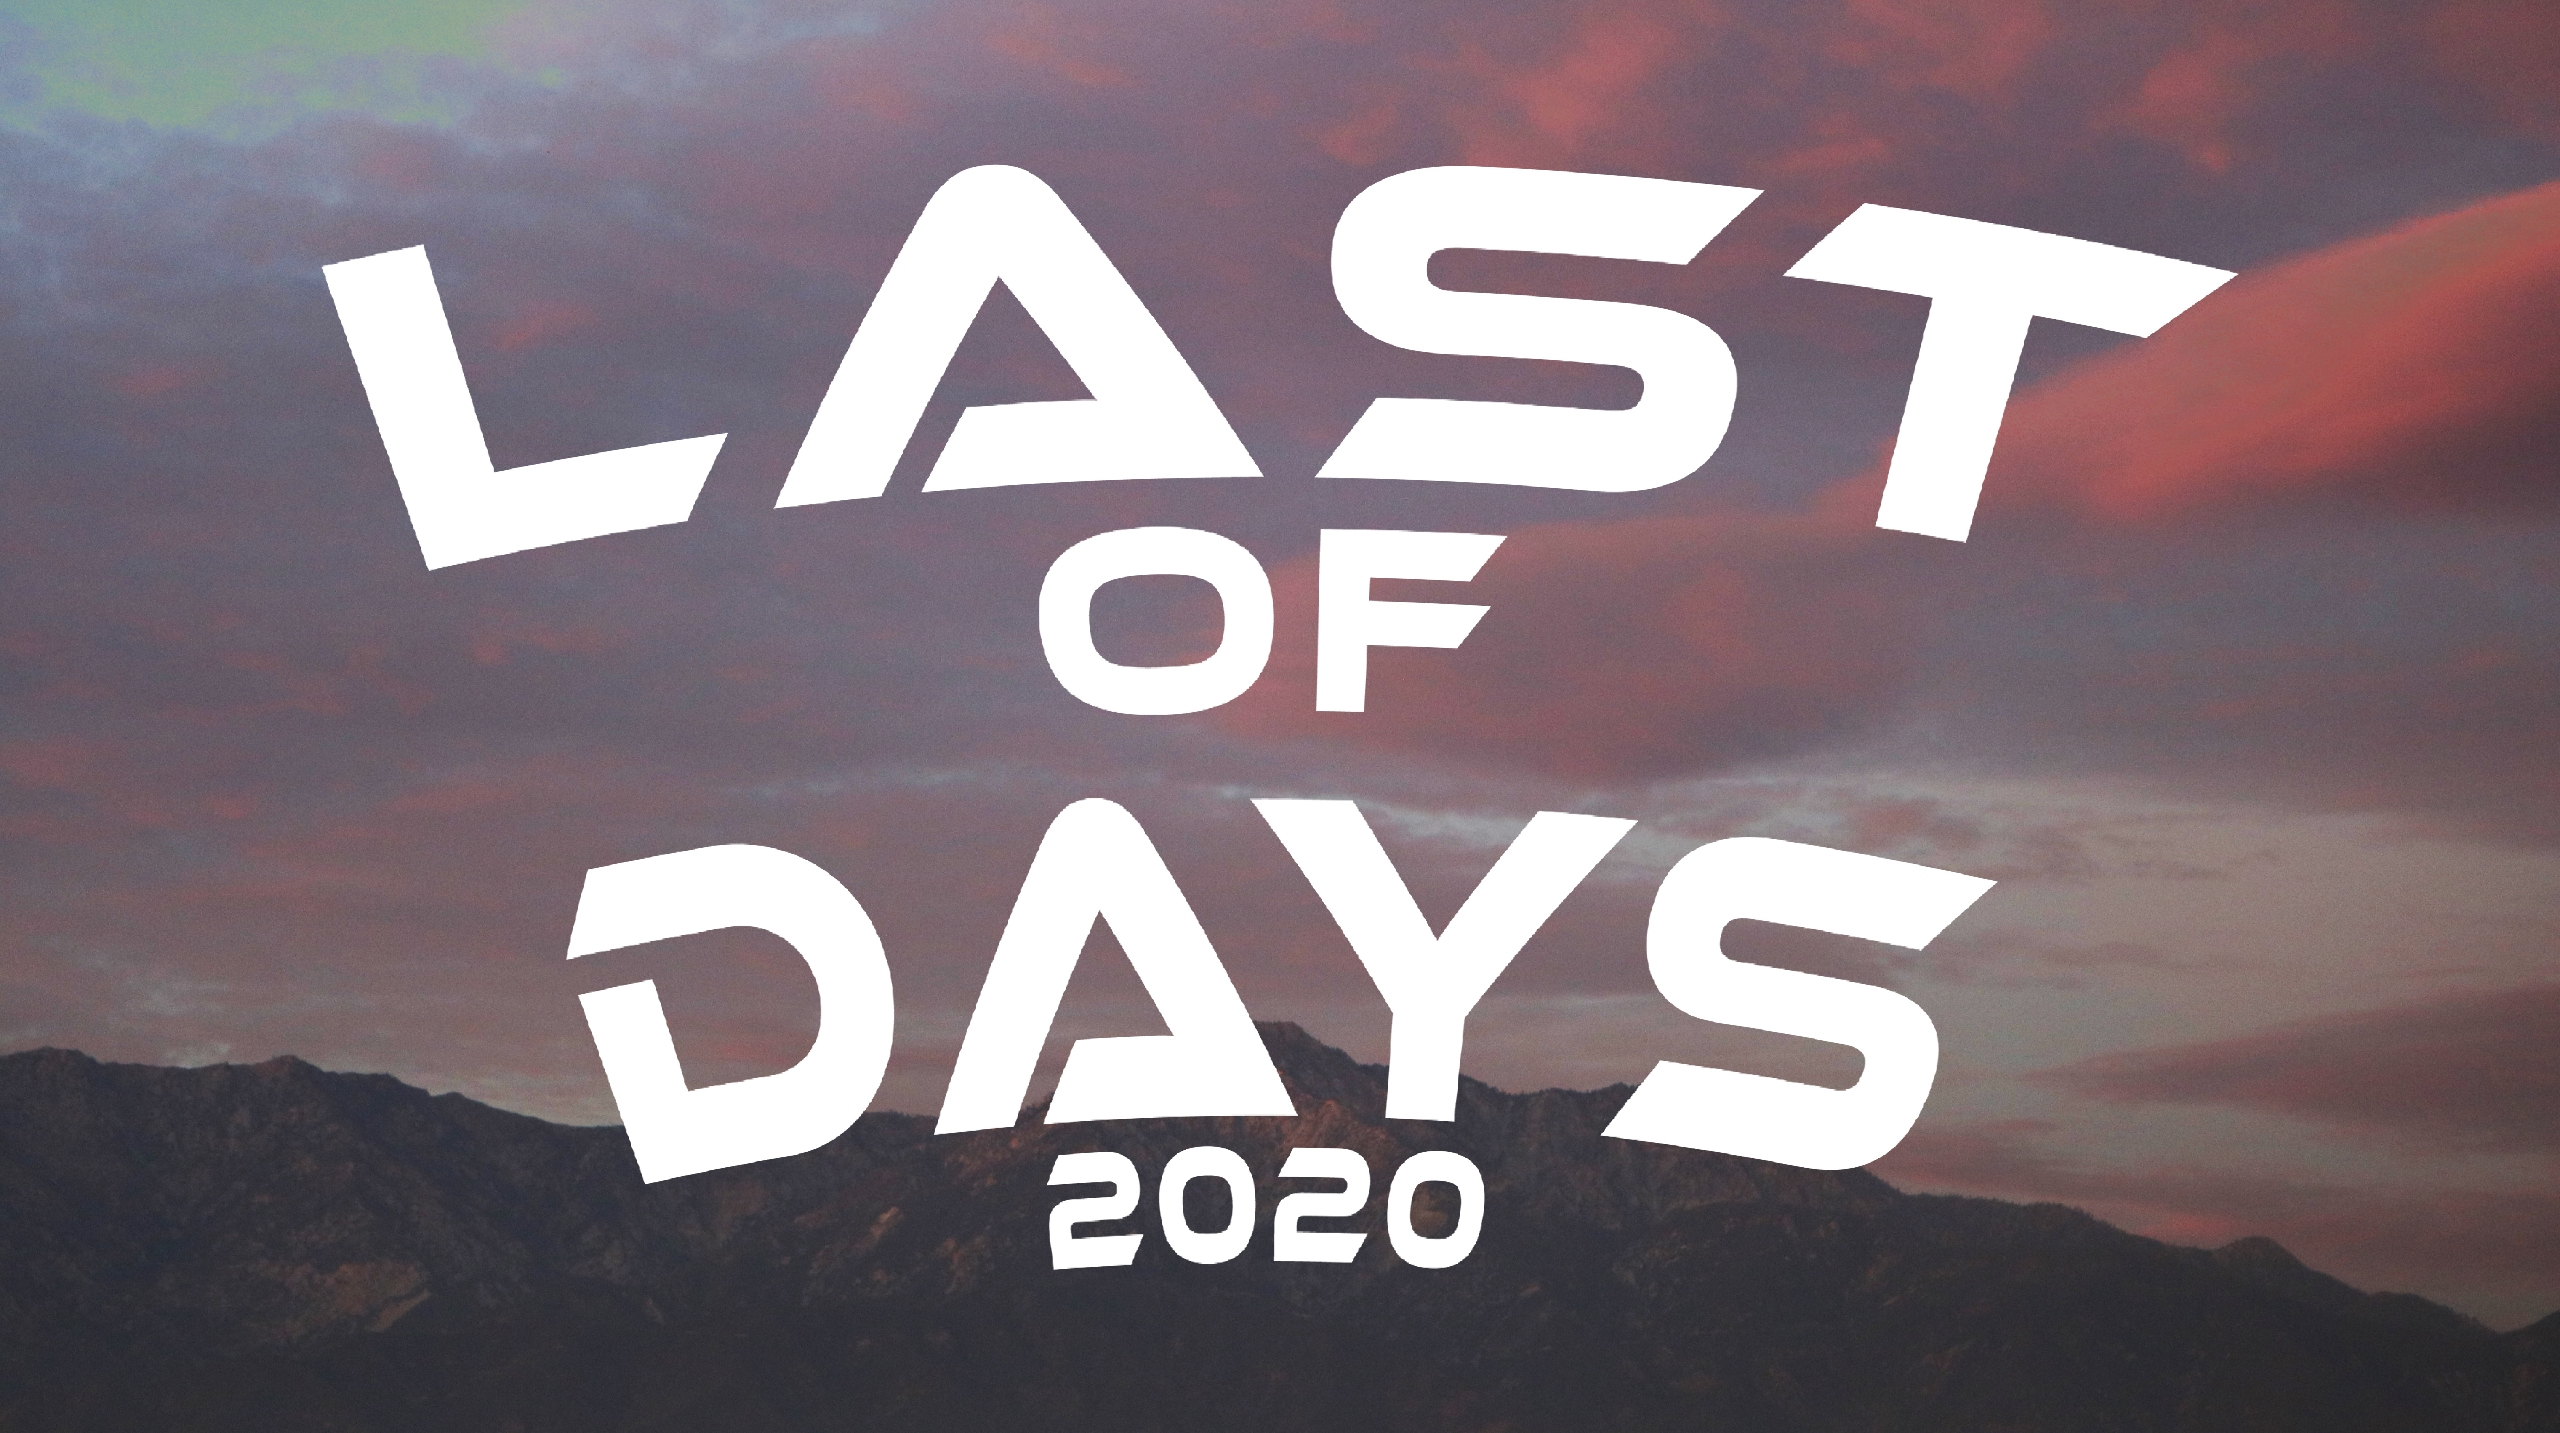 Last of Days 2020 (@lastdays2020) Cover Image